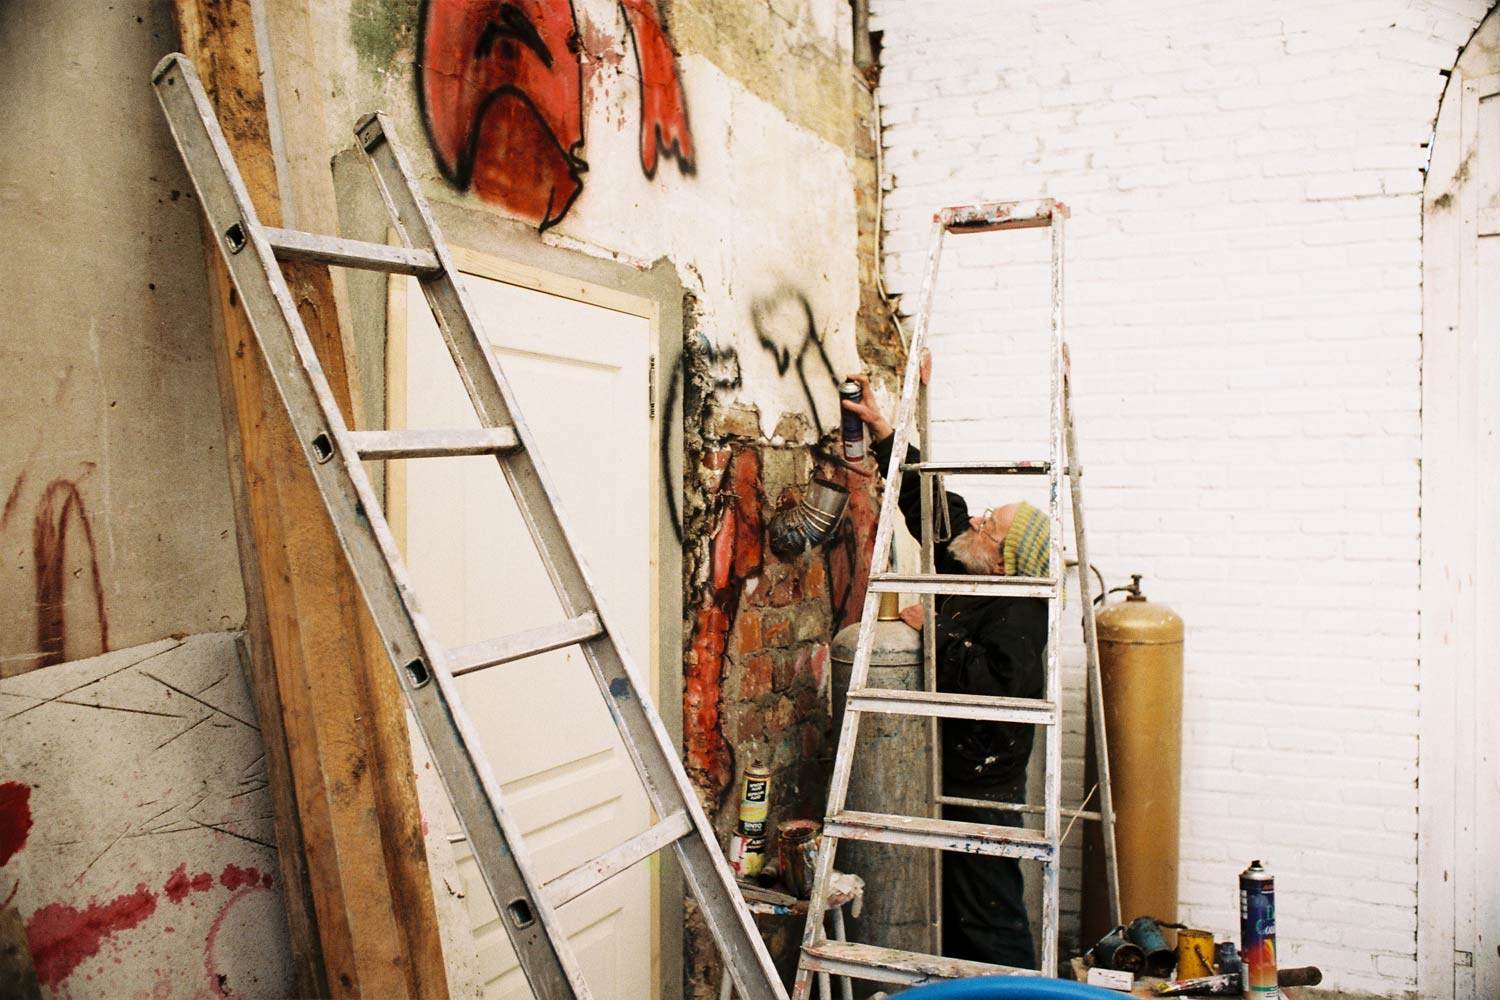 Summer studio – Murals at Hérouval